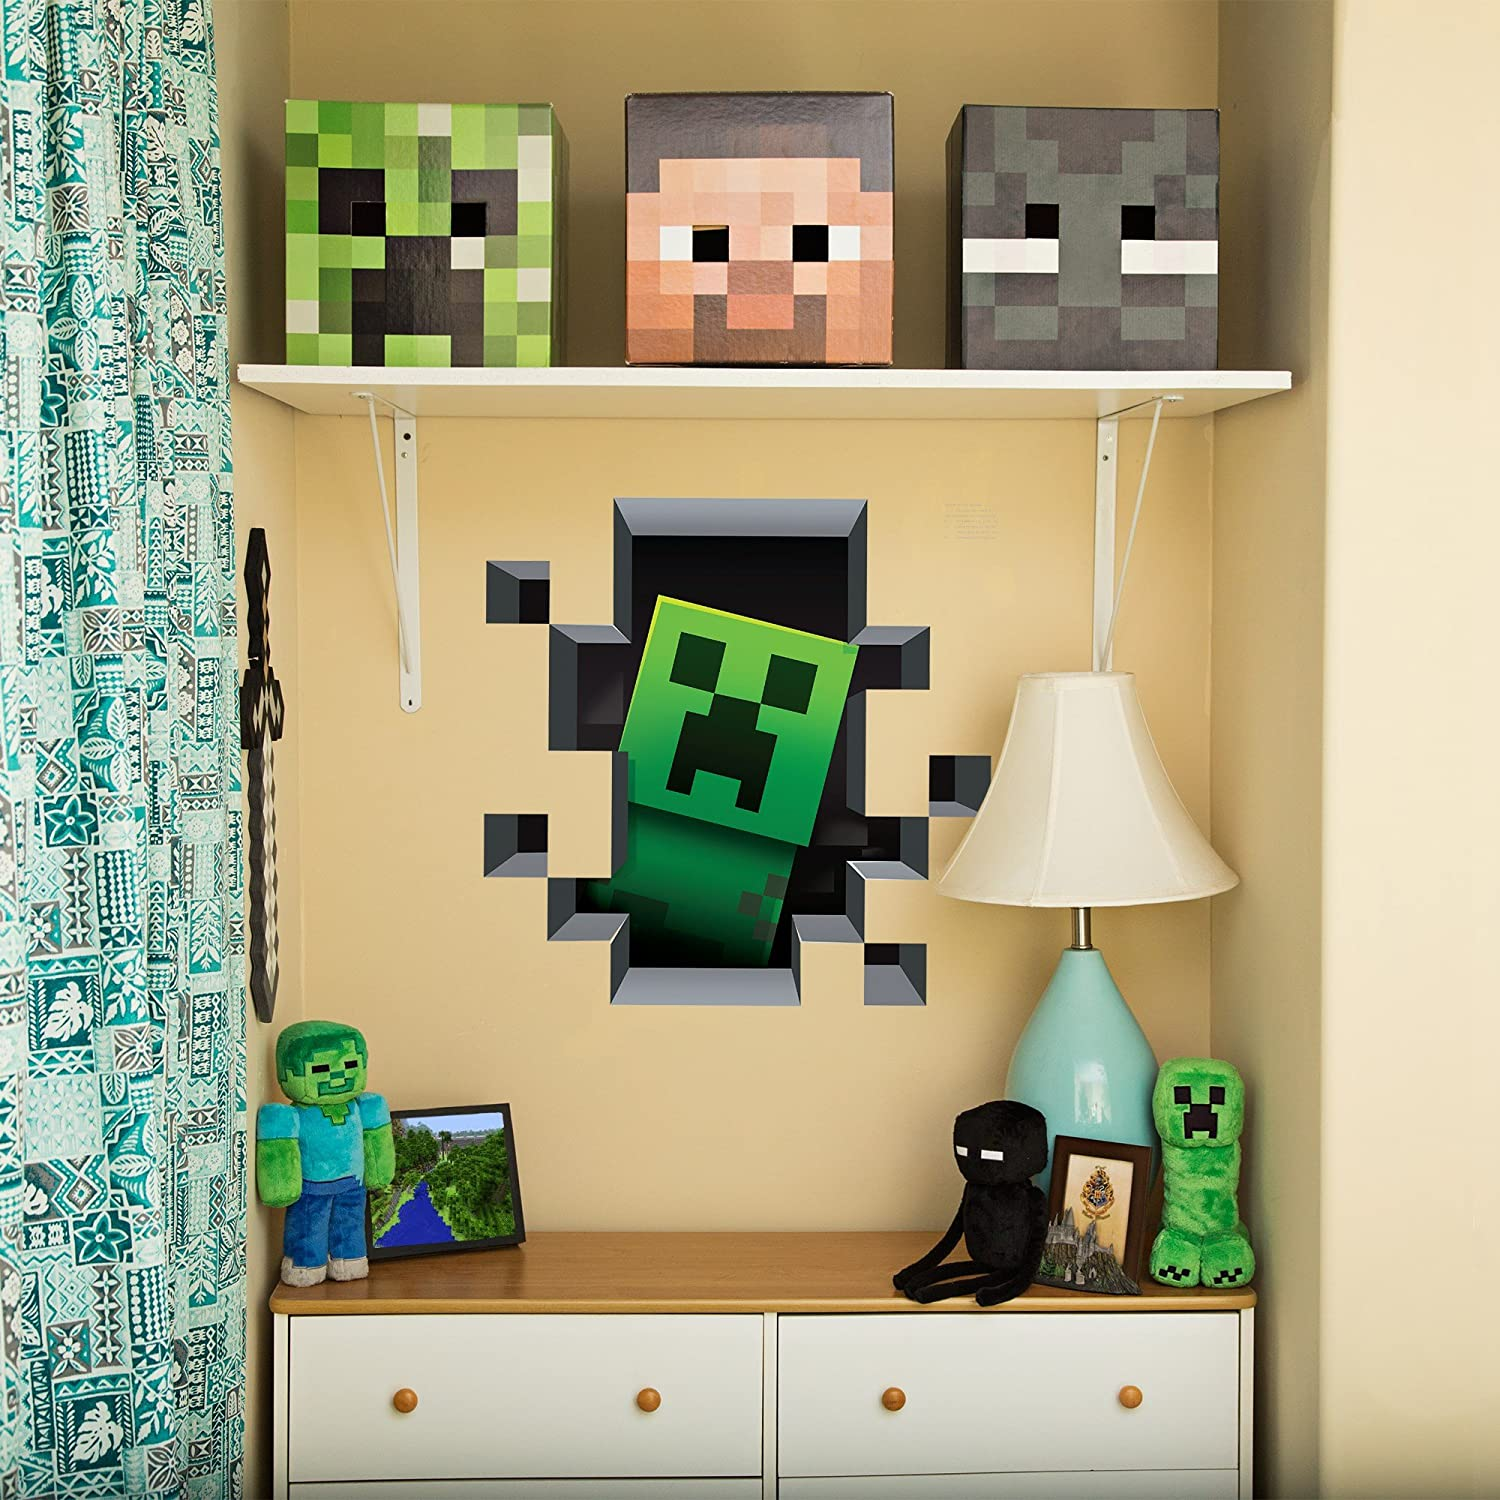 Minecraft Wandaufkleber 3er-Pack Creatures: Amazon.de: Küche ...